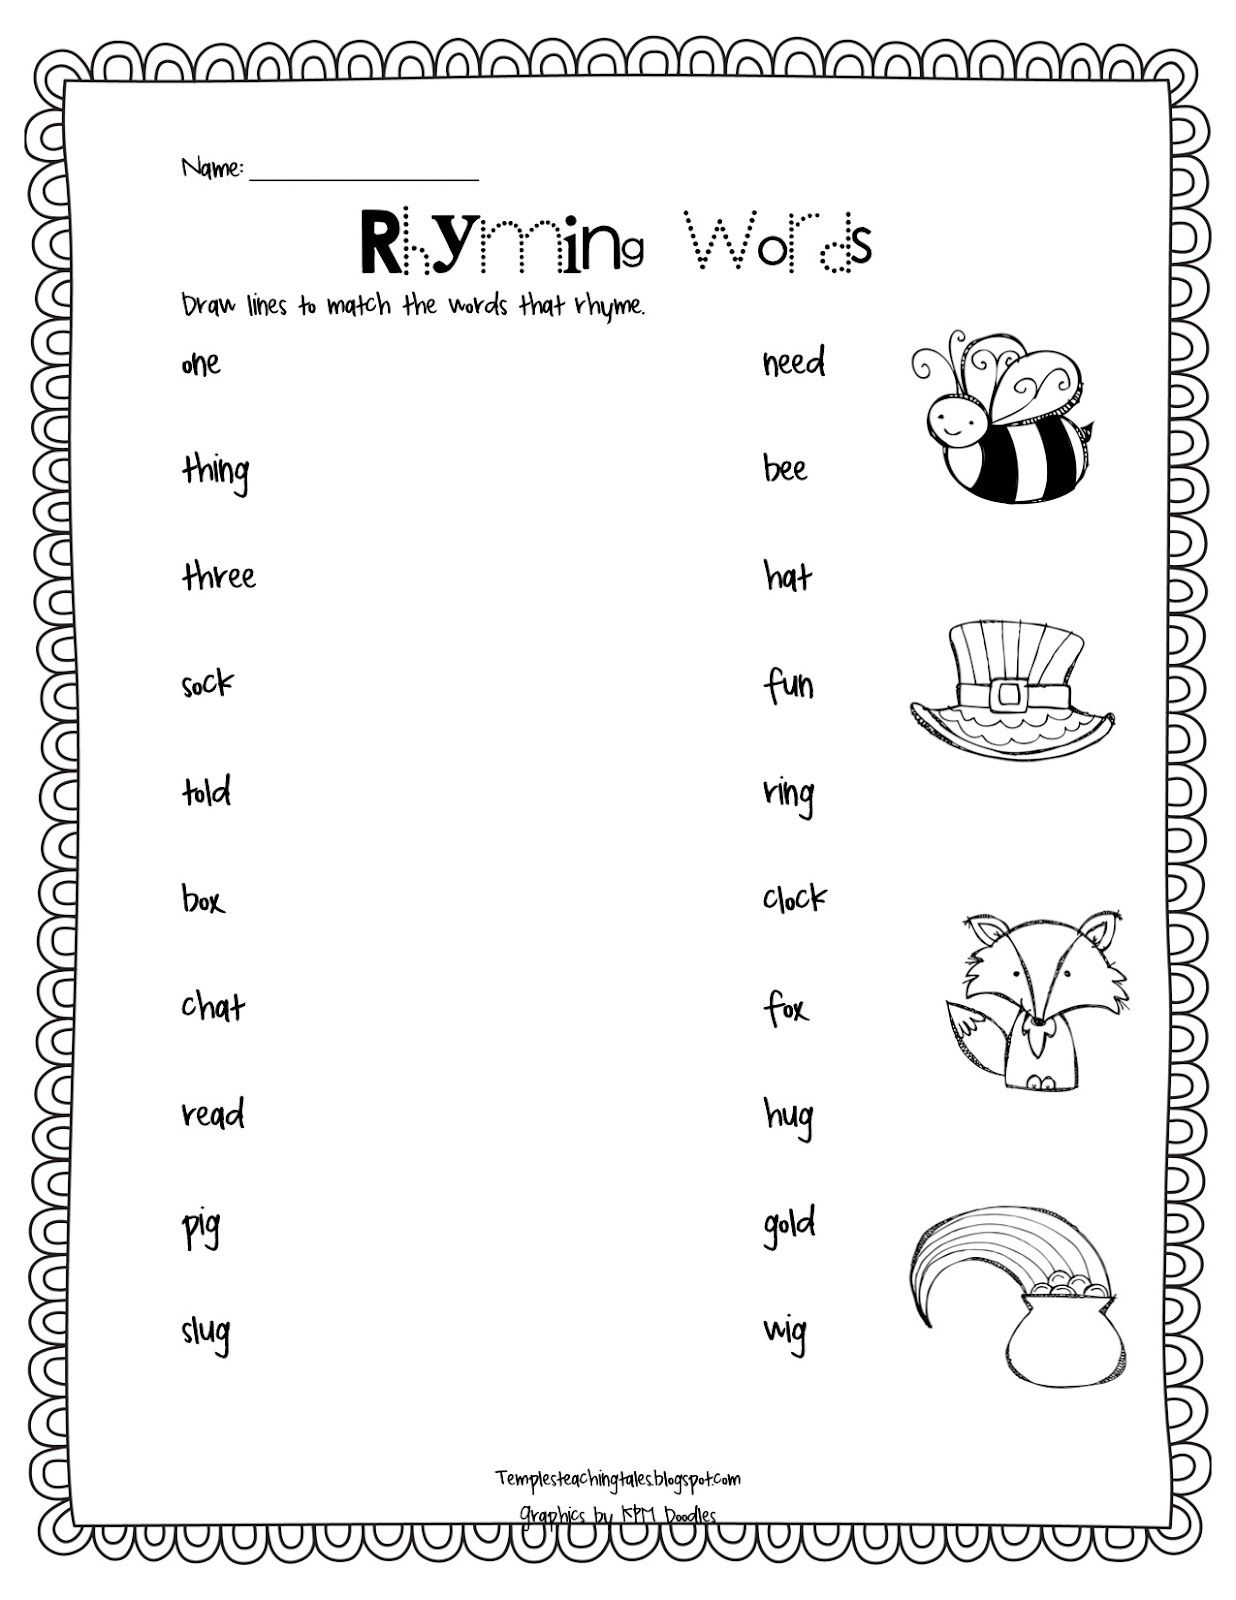 Worksheet Rhyming Words For Free 78 best images about rhyming on pinterest focus activities for children and long vowels